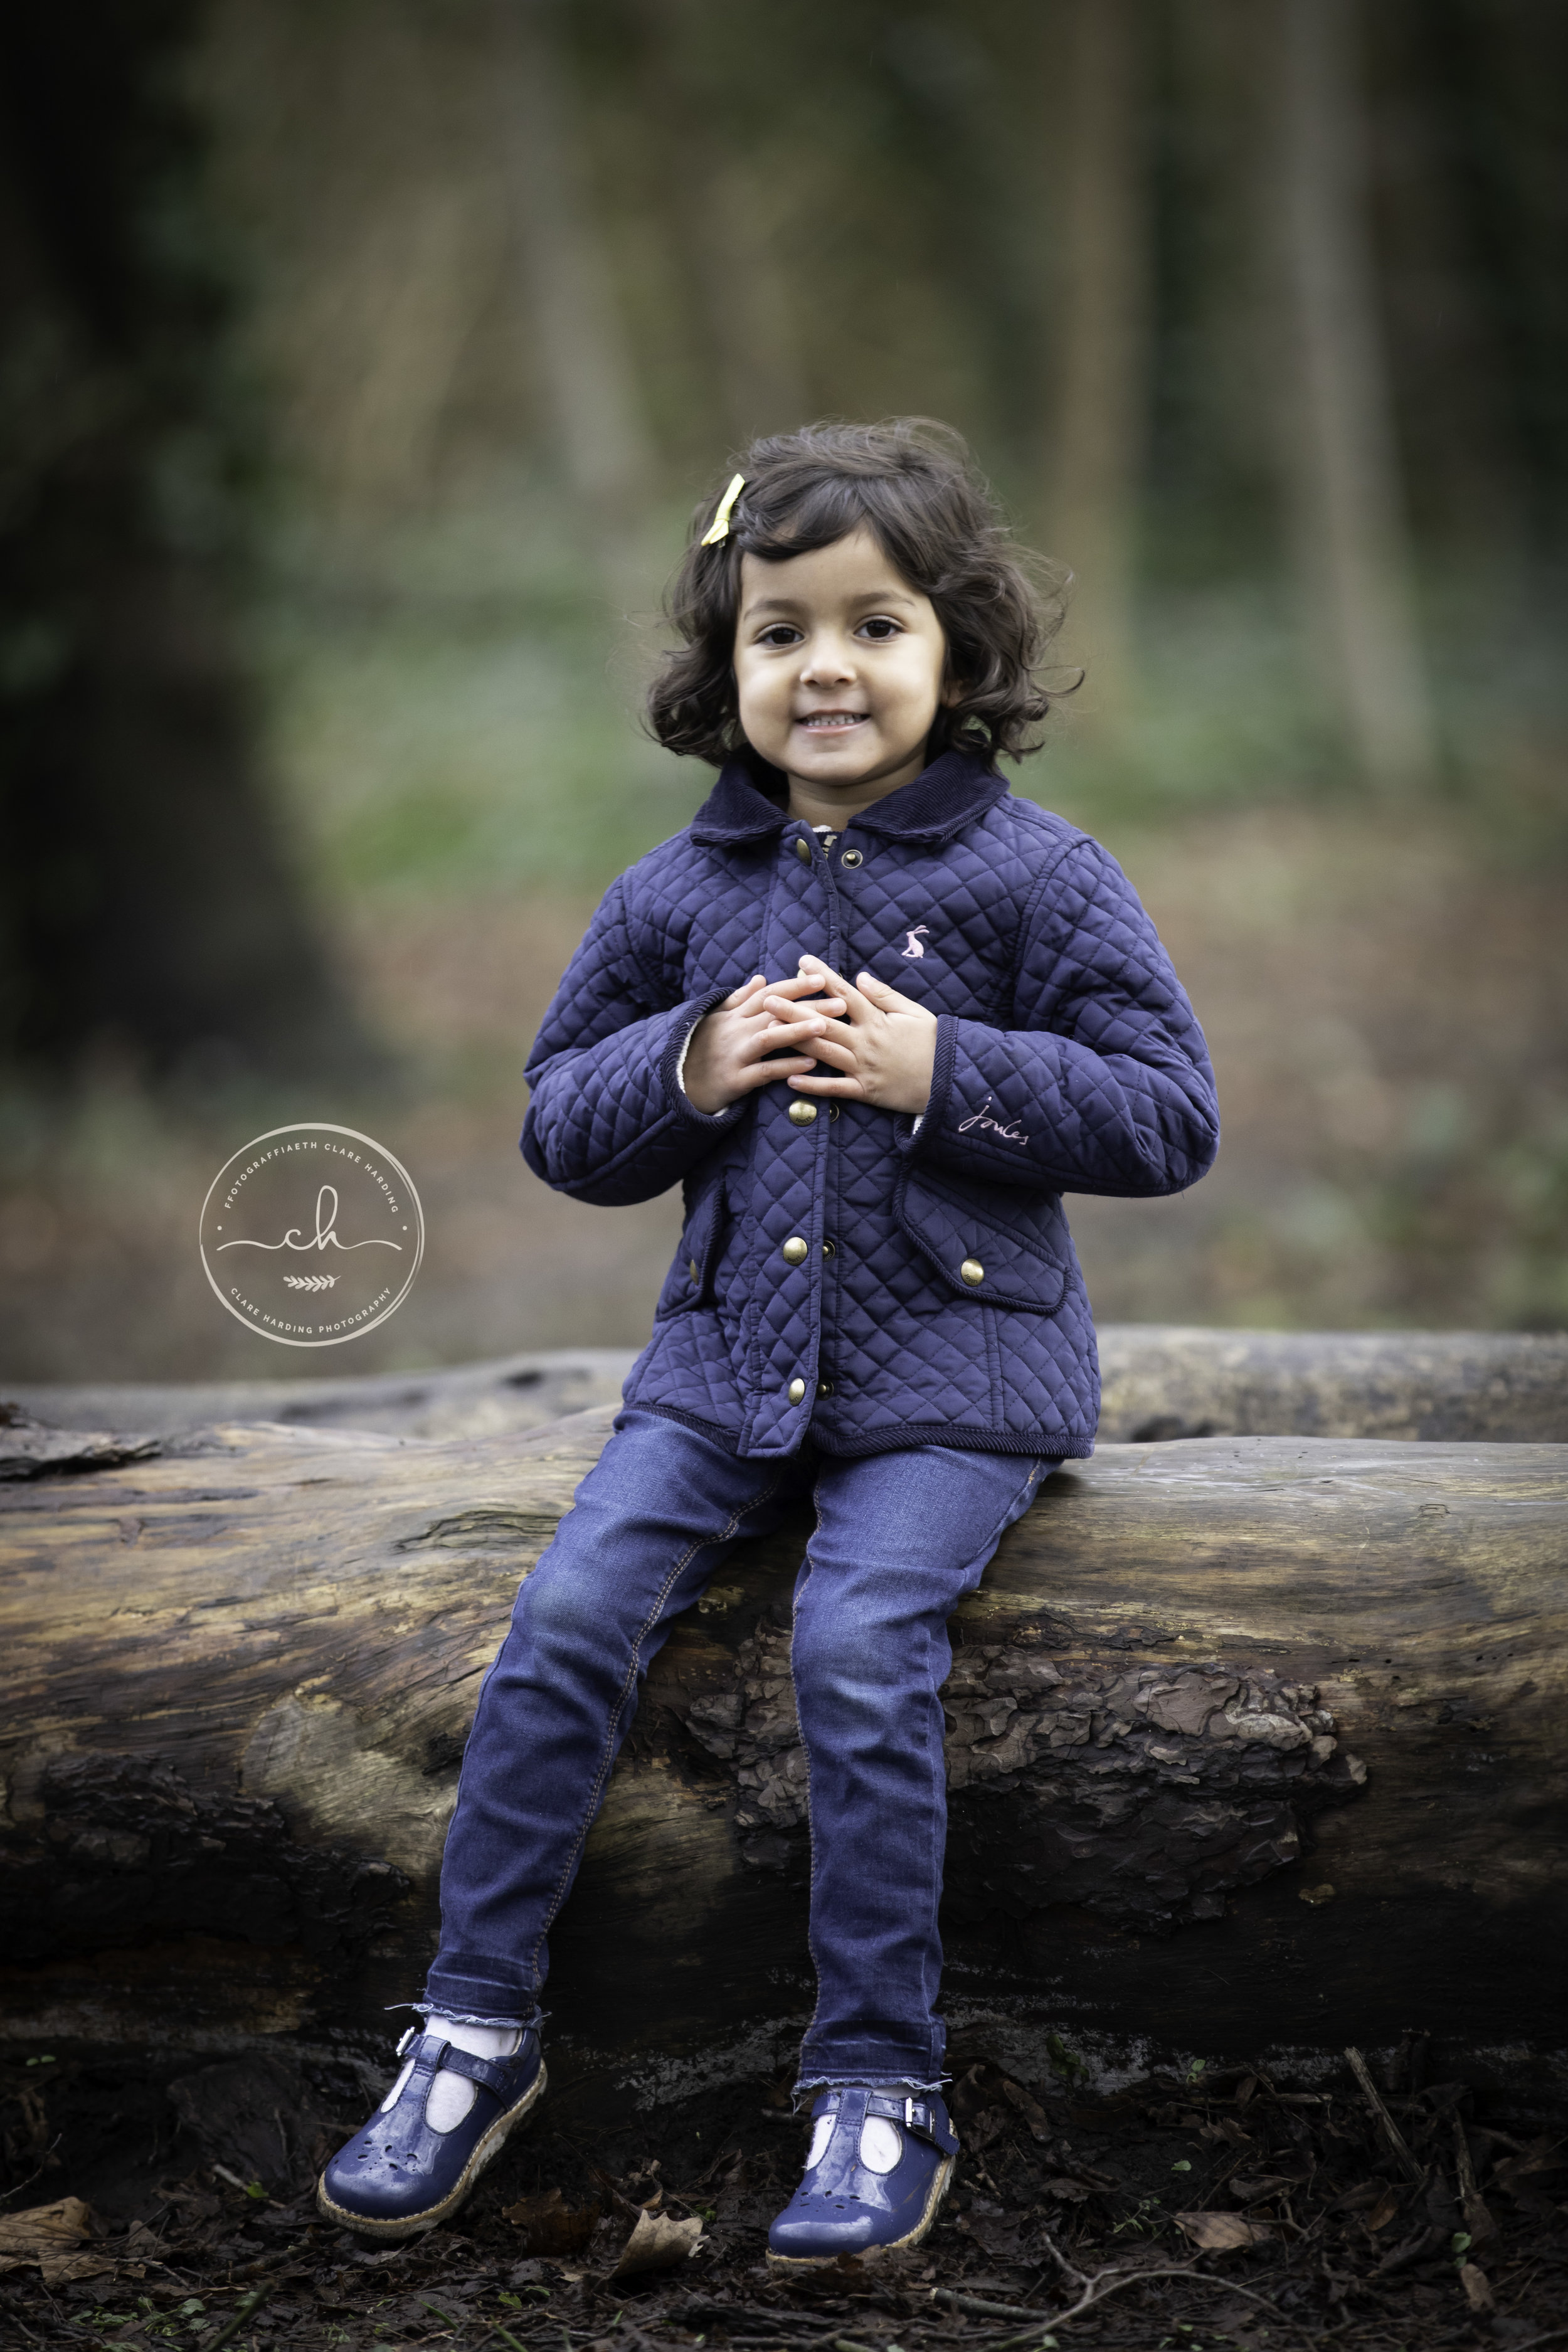 child and family photographer cardiff vale of glamorgan.jpg